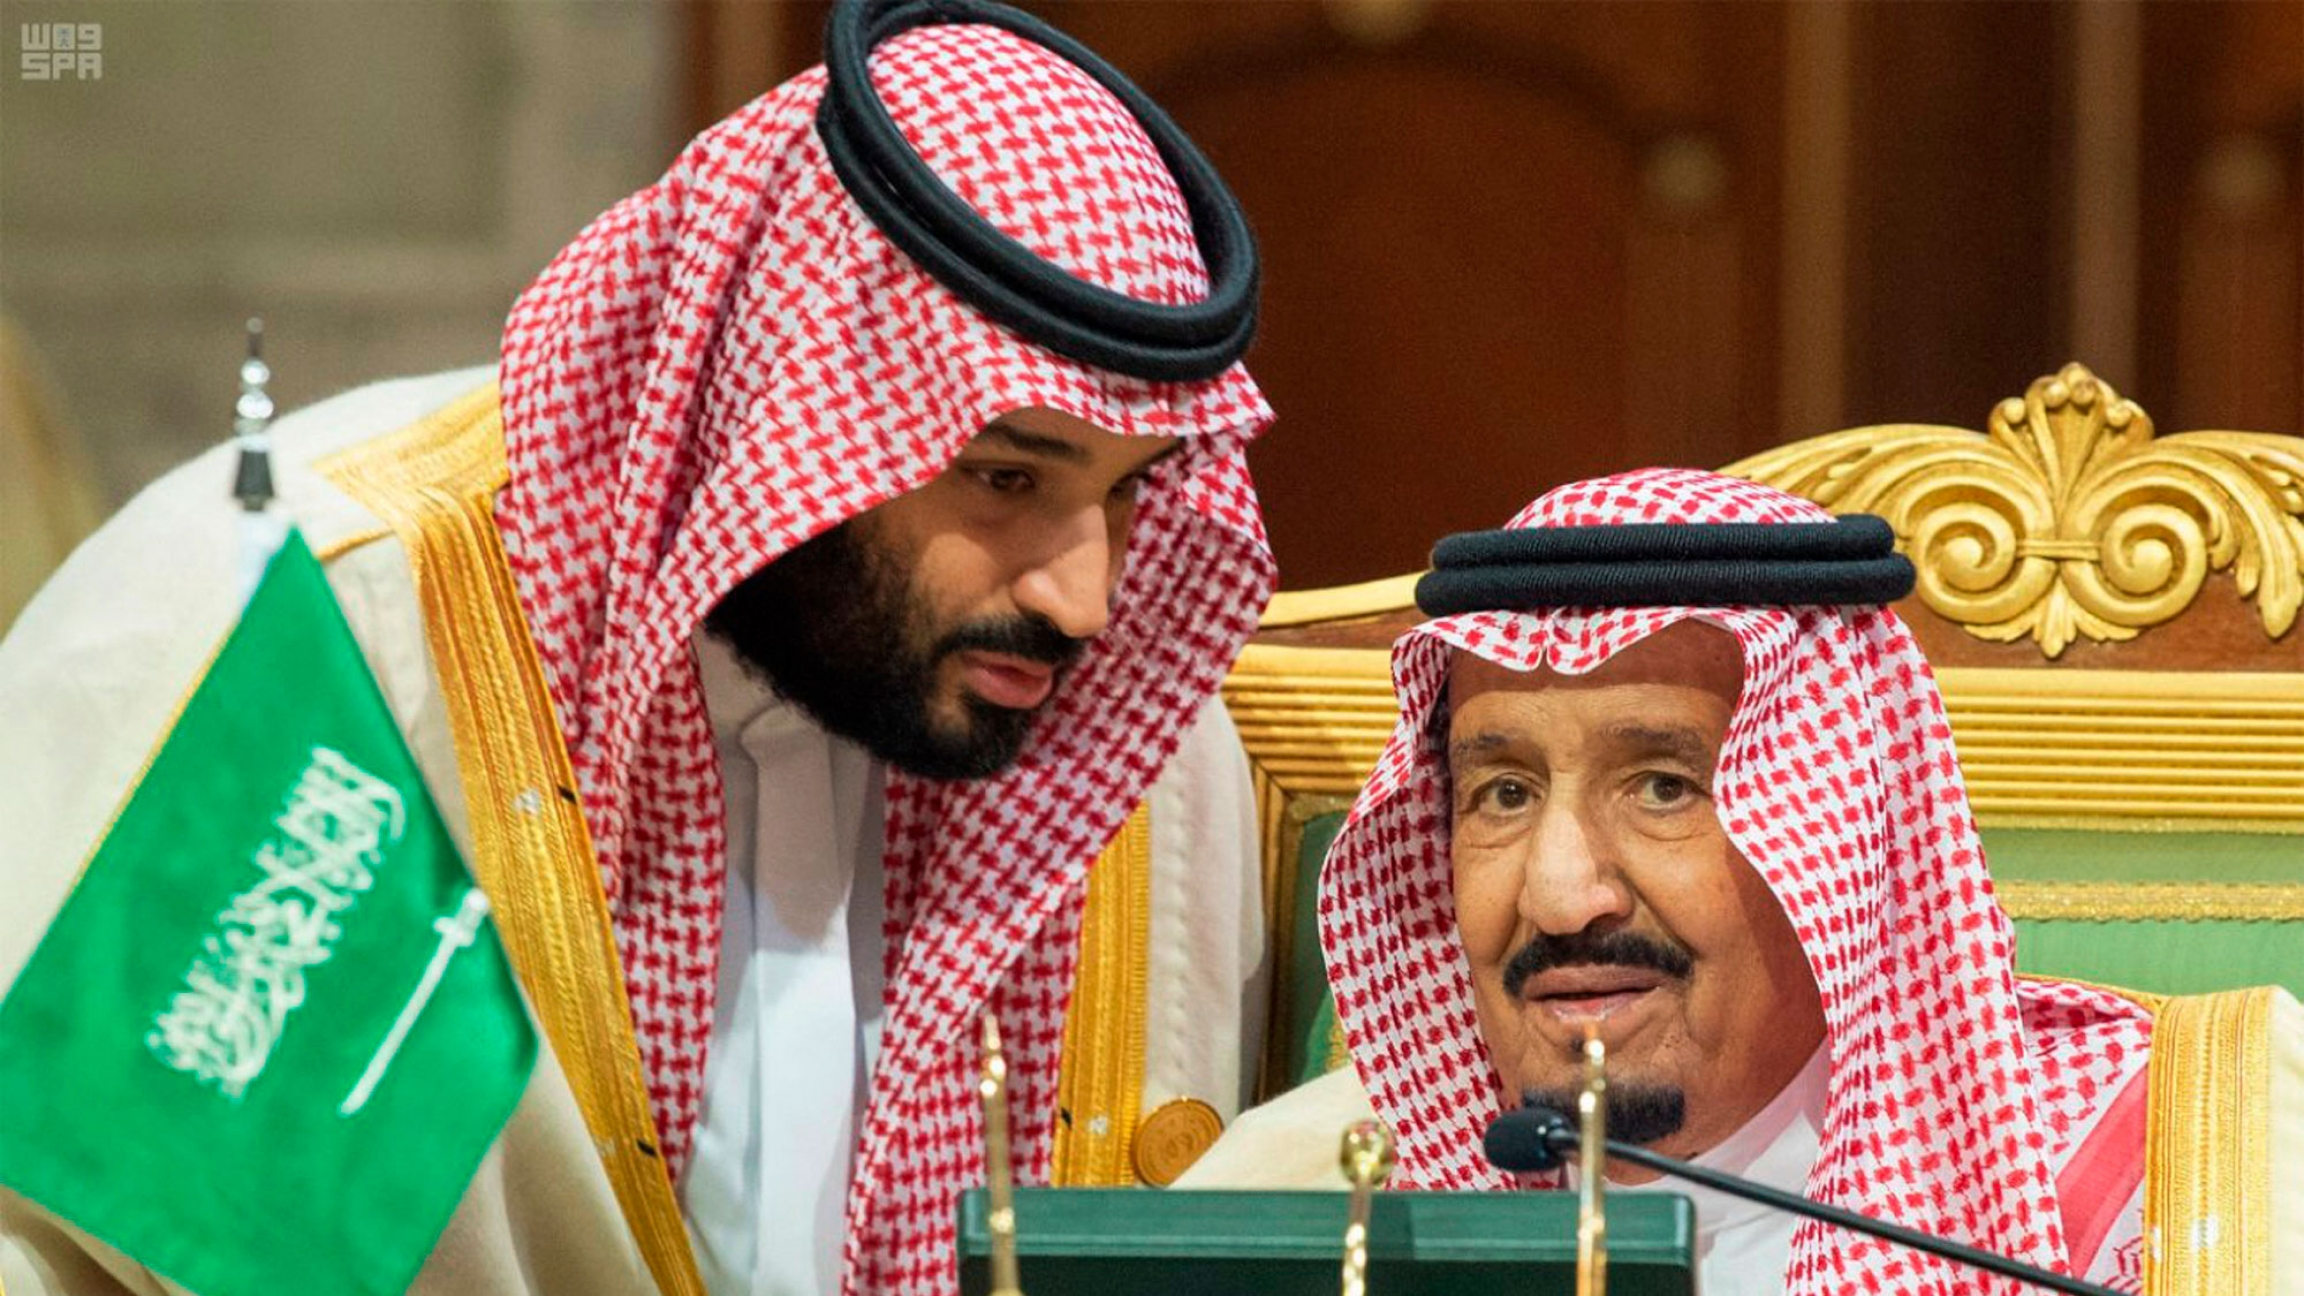 In this photo released by the state-run Saudi Press Agency, Saudi Crown Prince Mohamed bin Salman, left, speaks with his father, King Salman, right, at a meeting of the Cooperation Council for the Arab States of the Gulf in Riyadh, Saudi Arabia.